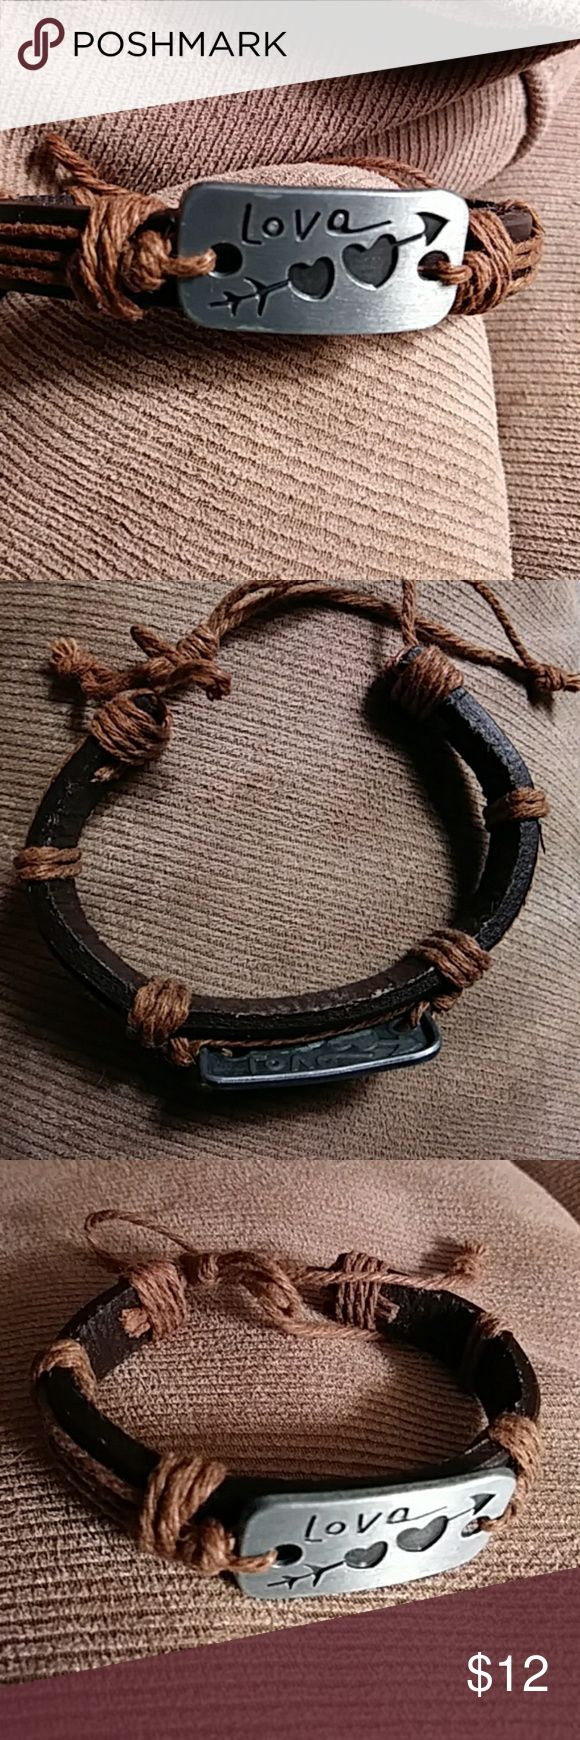 how to make a bracelet out of leather cord